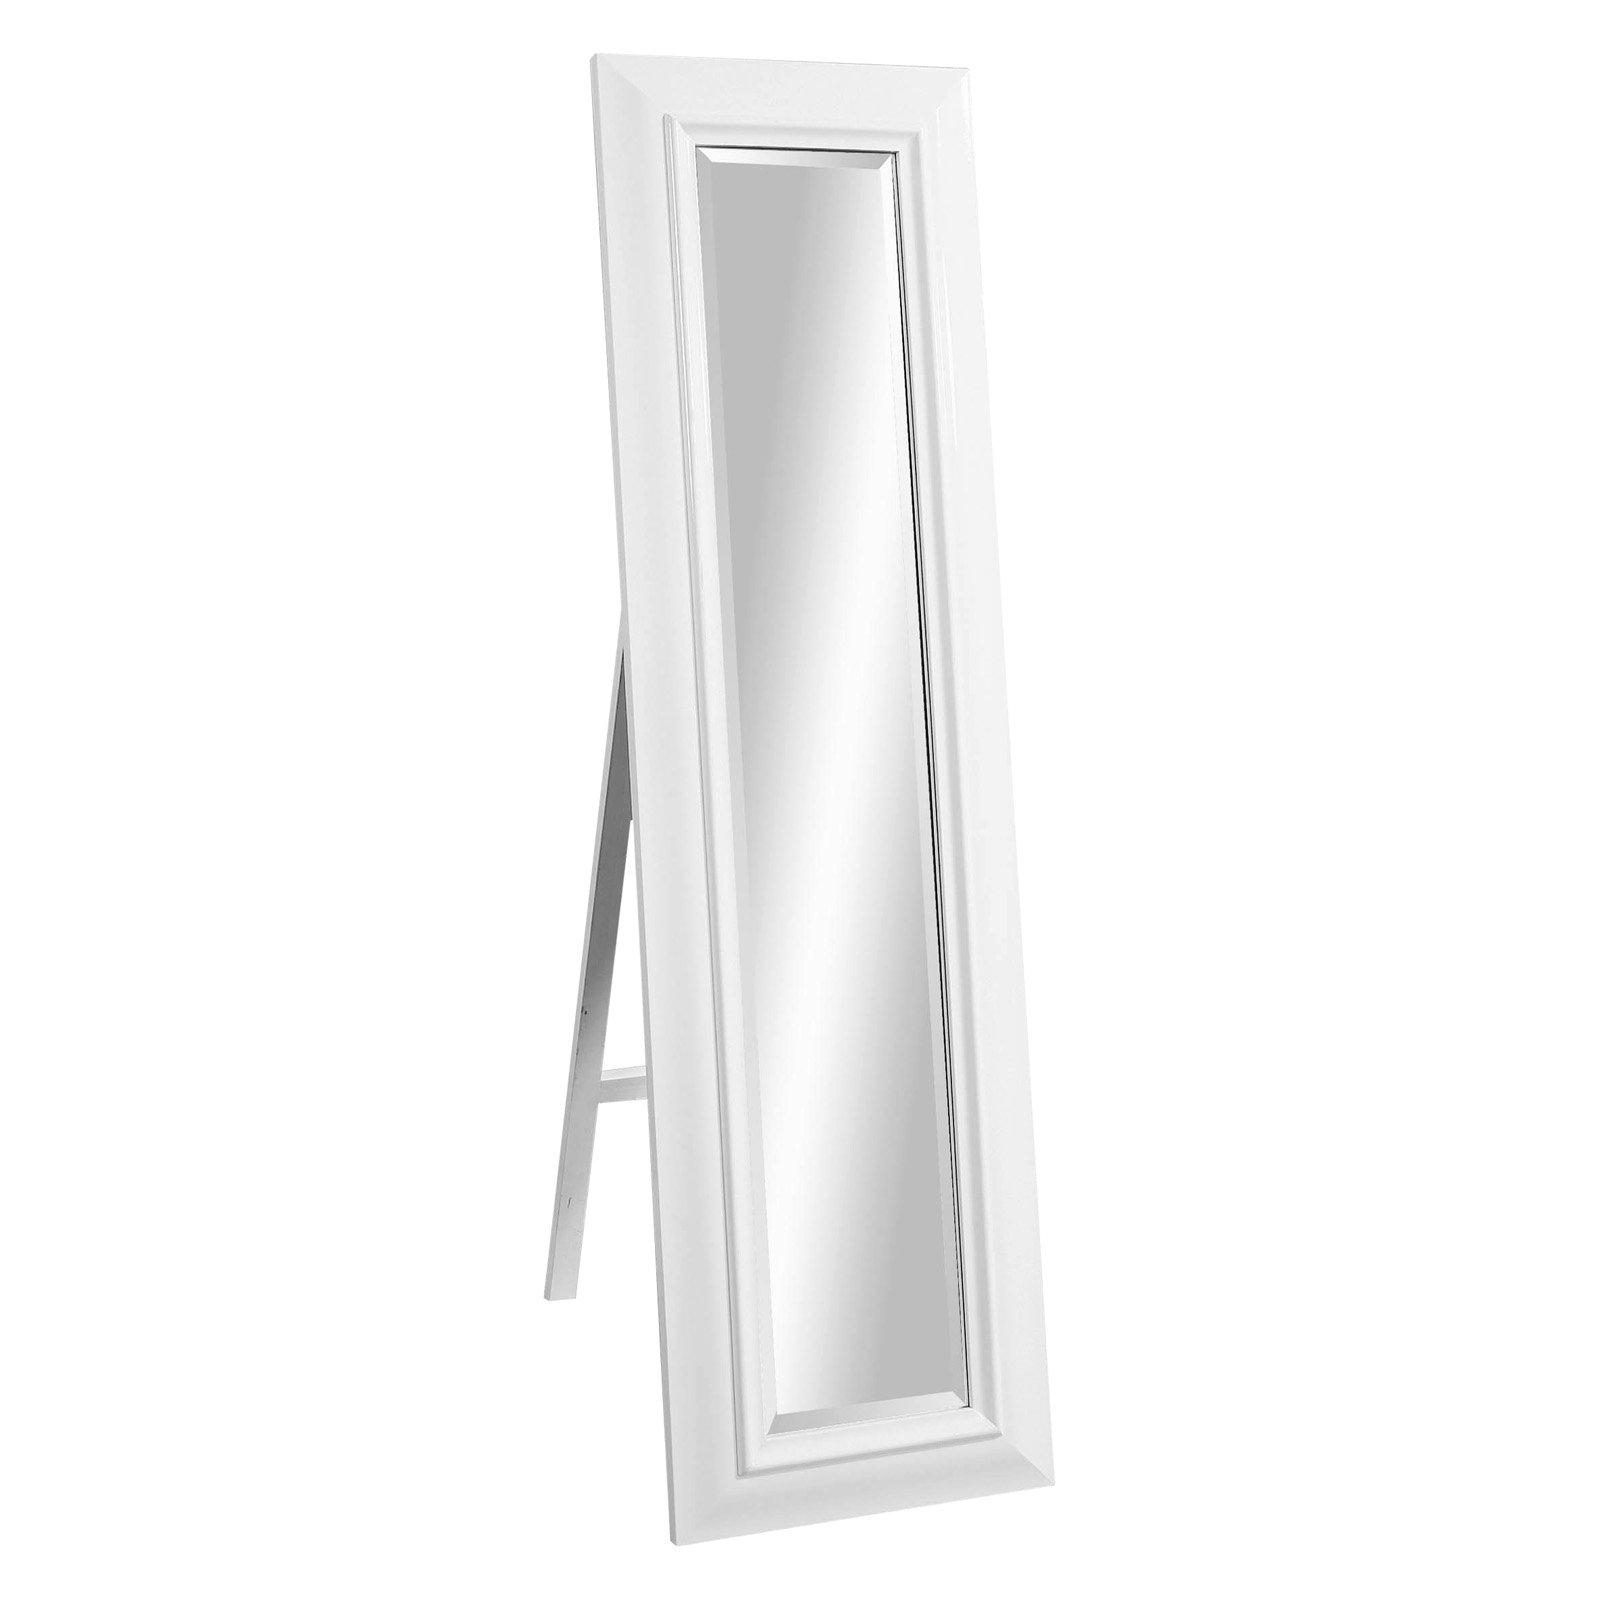 Homeware: Large Stand Up Mirrors | Standing Floor Mirrors | Floor Pertaining To Cheap Stand Up Mirrors (View 7 of 20)